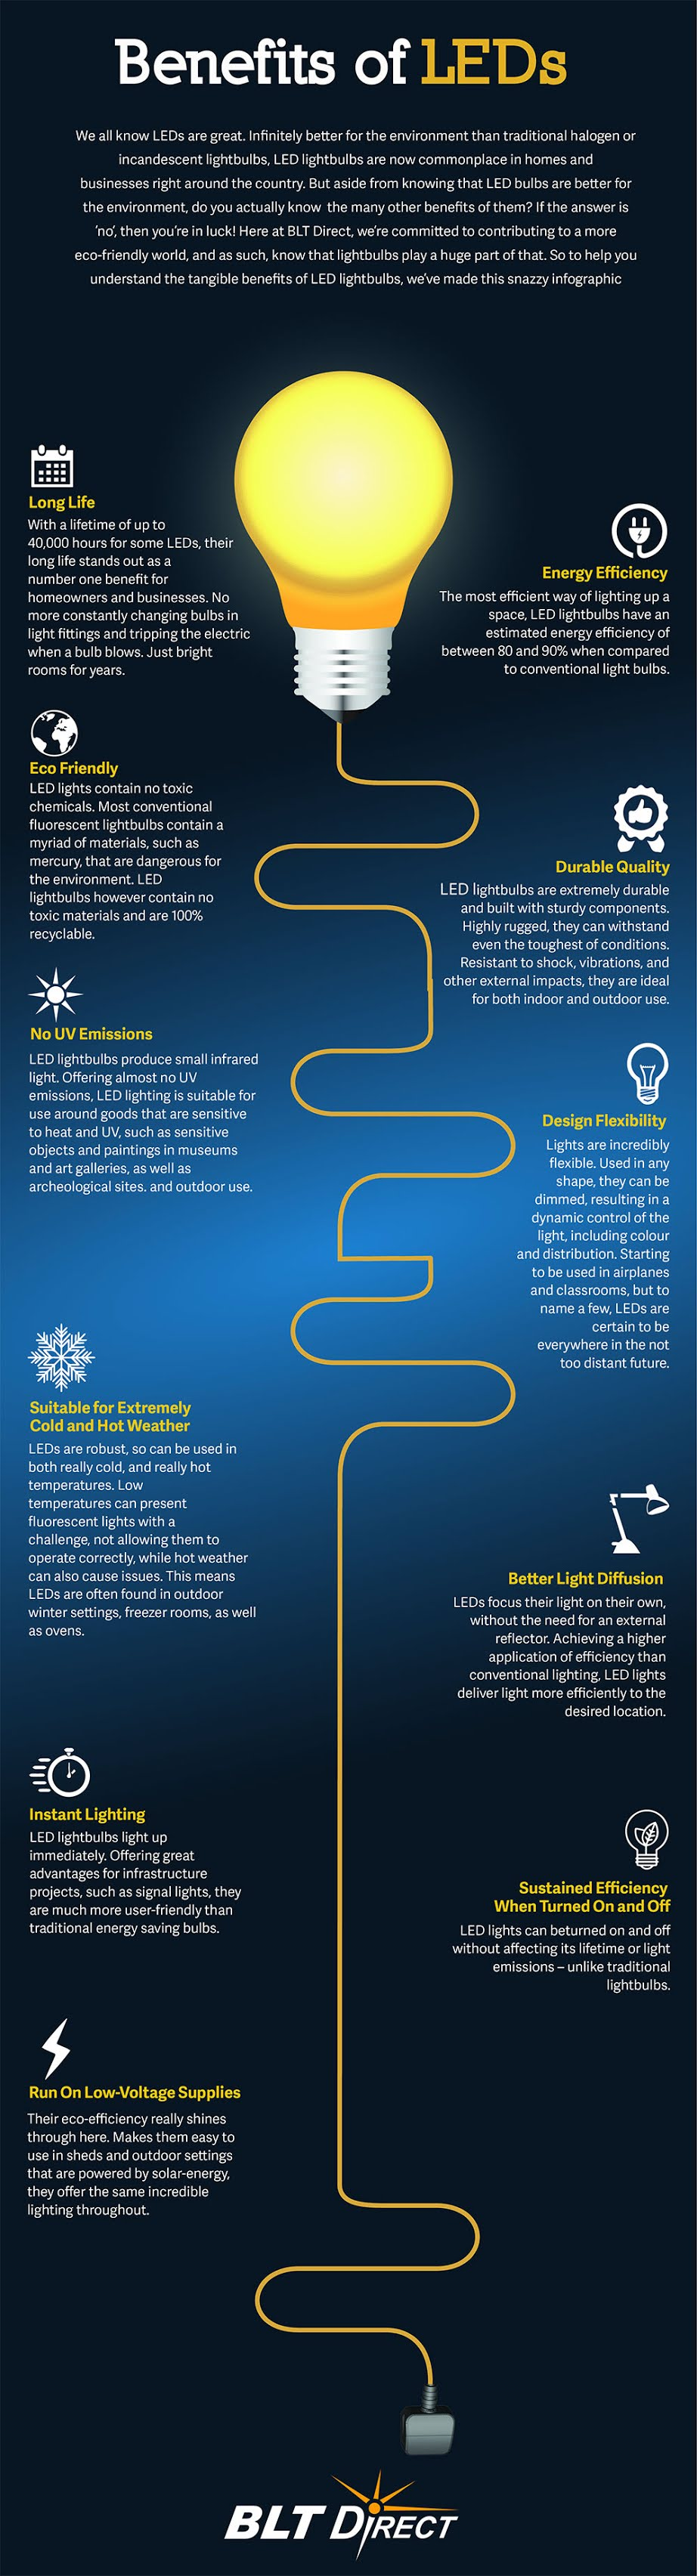 Benefits Of LEDs #infographic